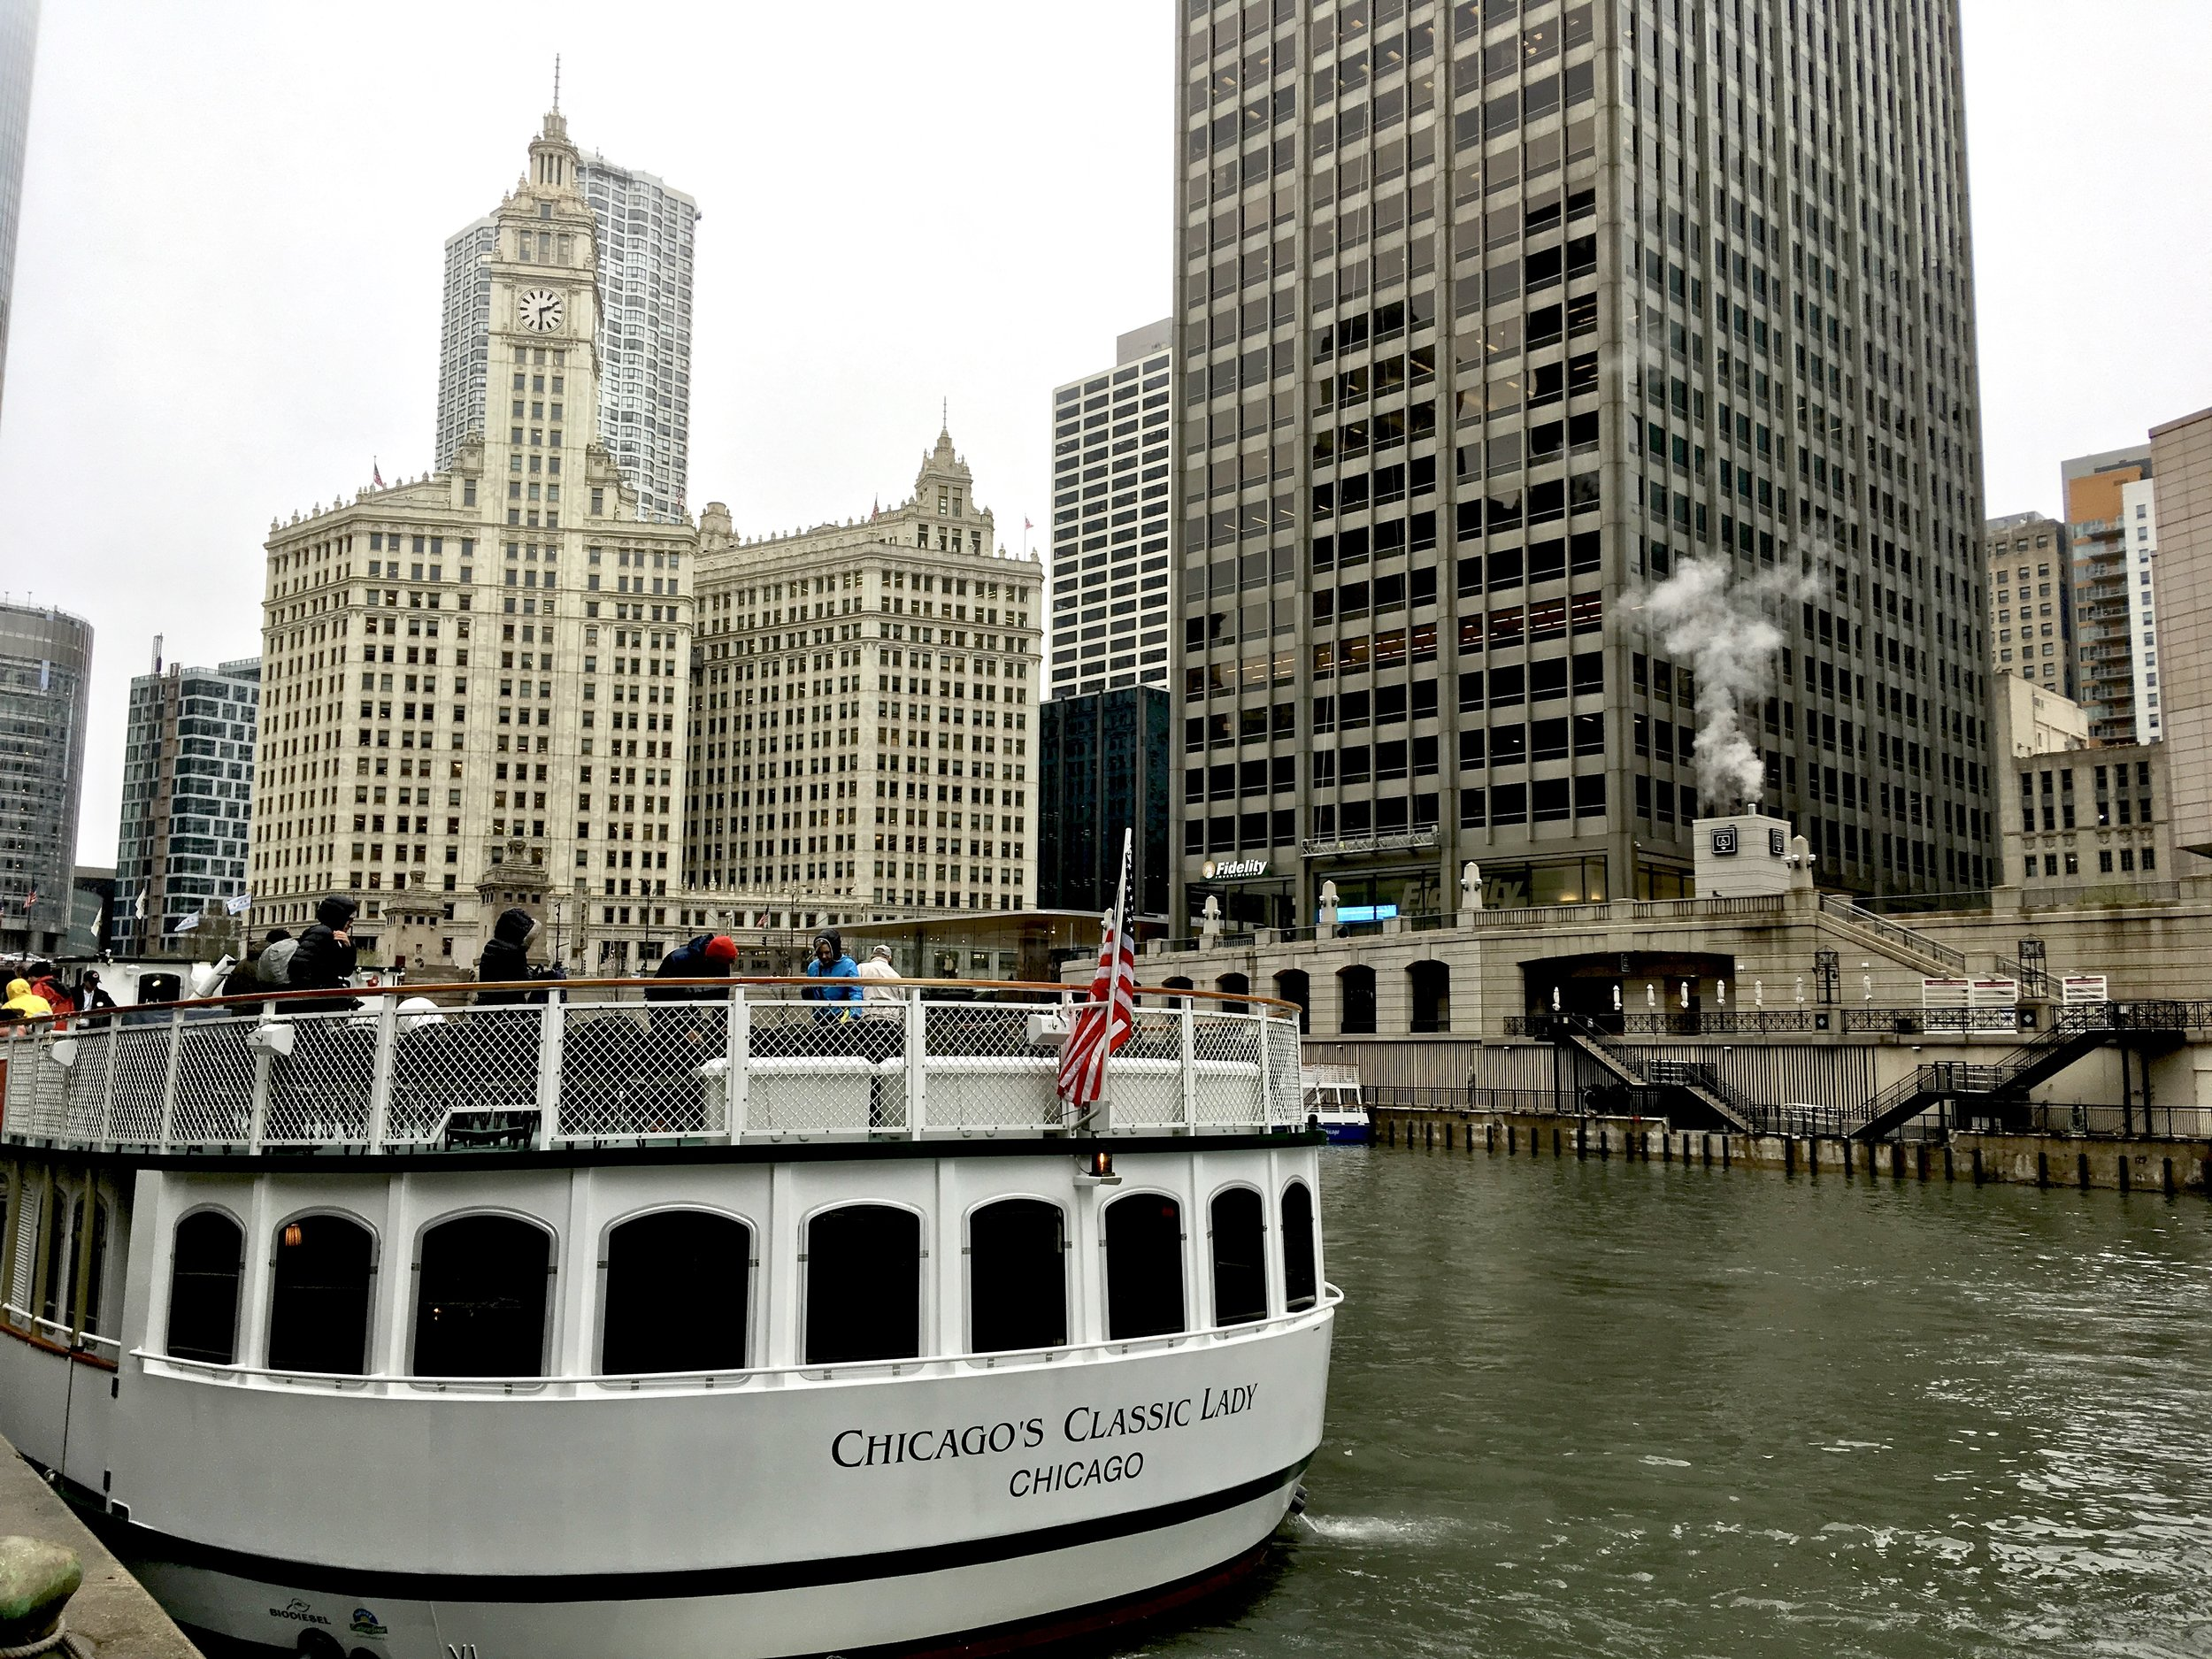 Chicago's First Lady Cruise